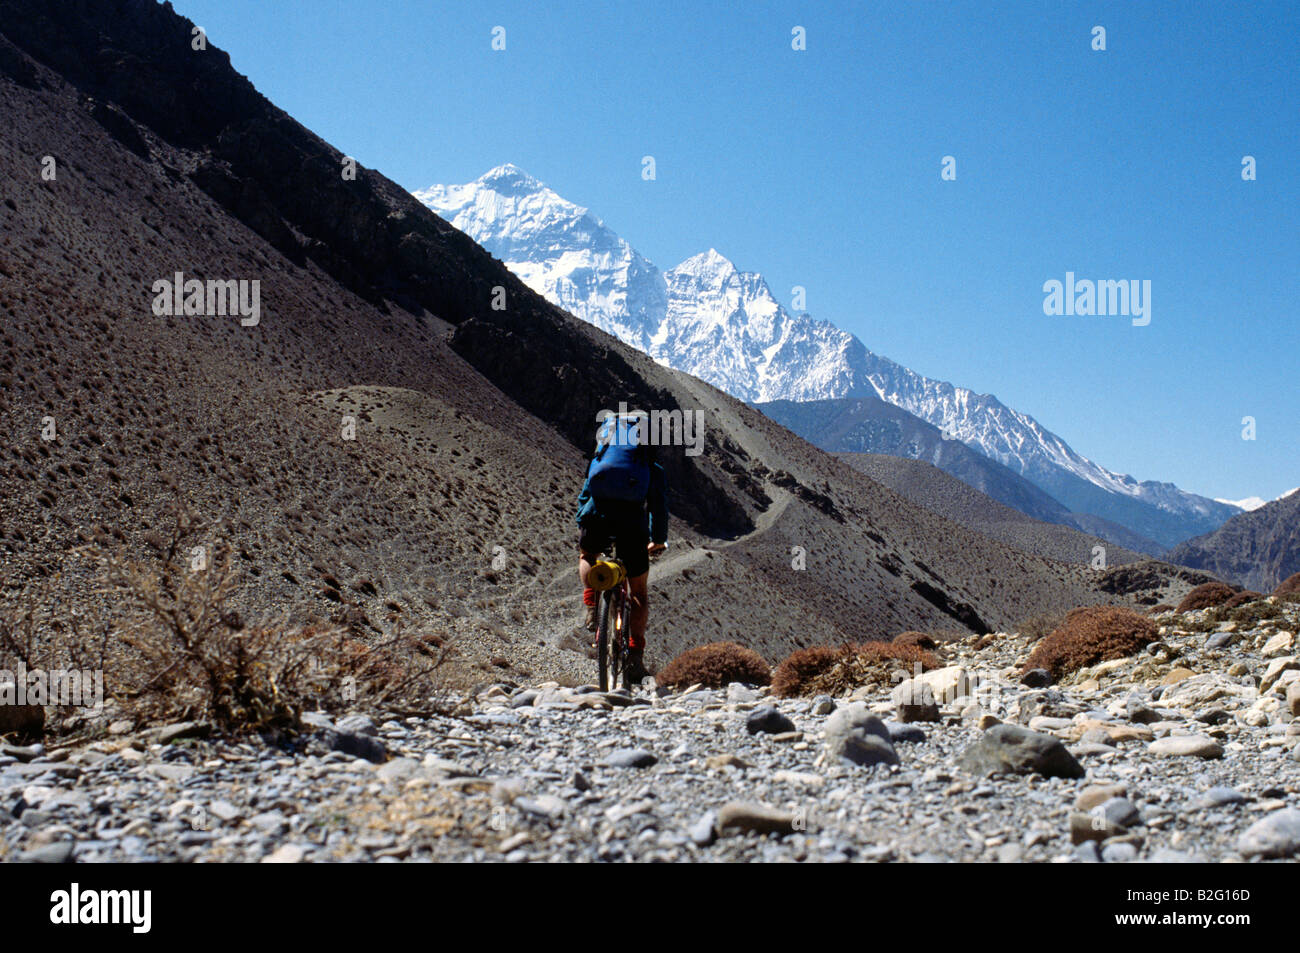 Doug Blane mountain biking around the Annapurna circuit in Himalayan Kingdom of Nepal Nepalese Himalayas - Stock Image